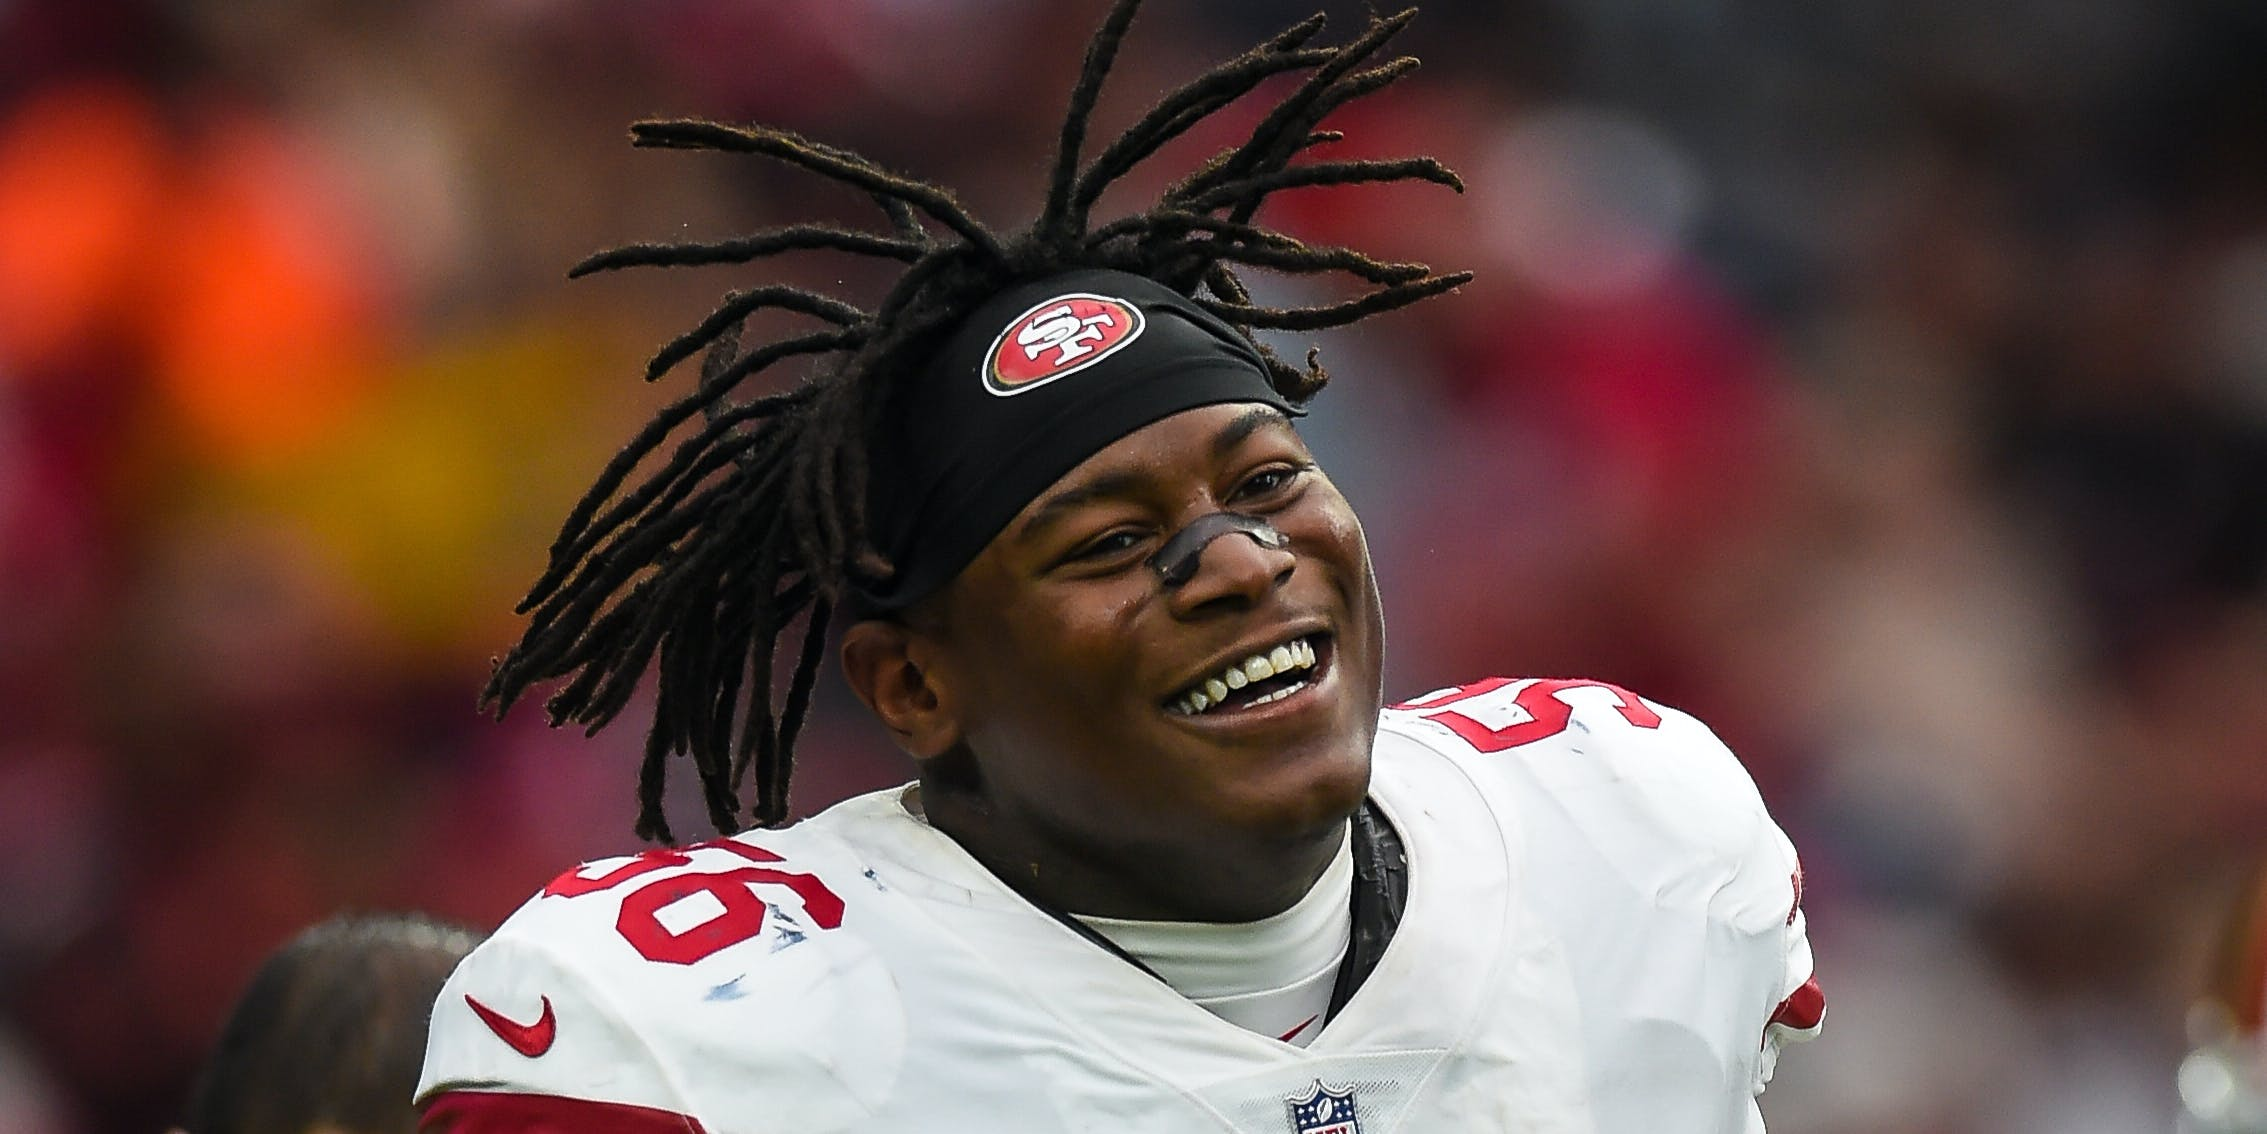 Reuben Foster of the San Fransisco 49ers smiling during a game